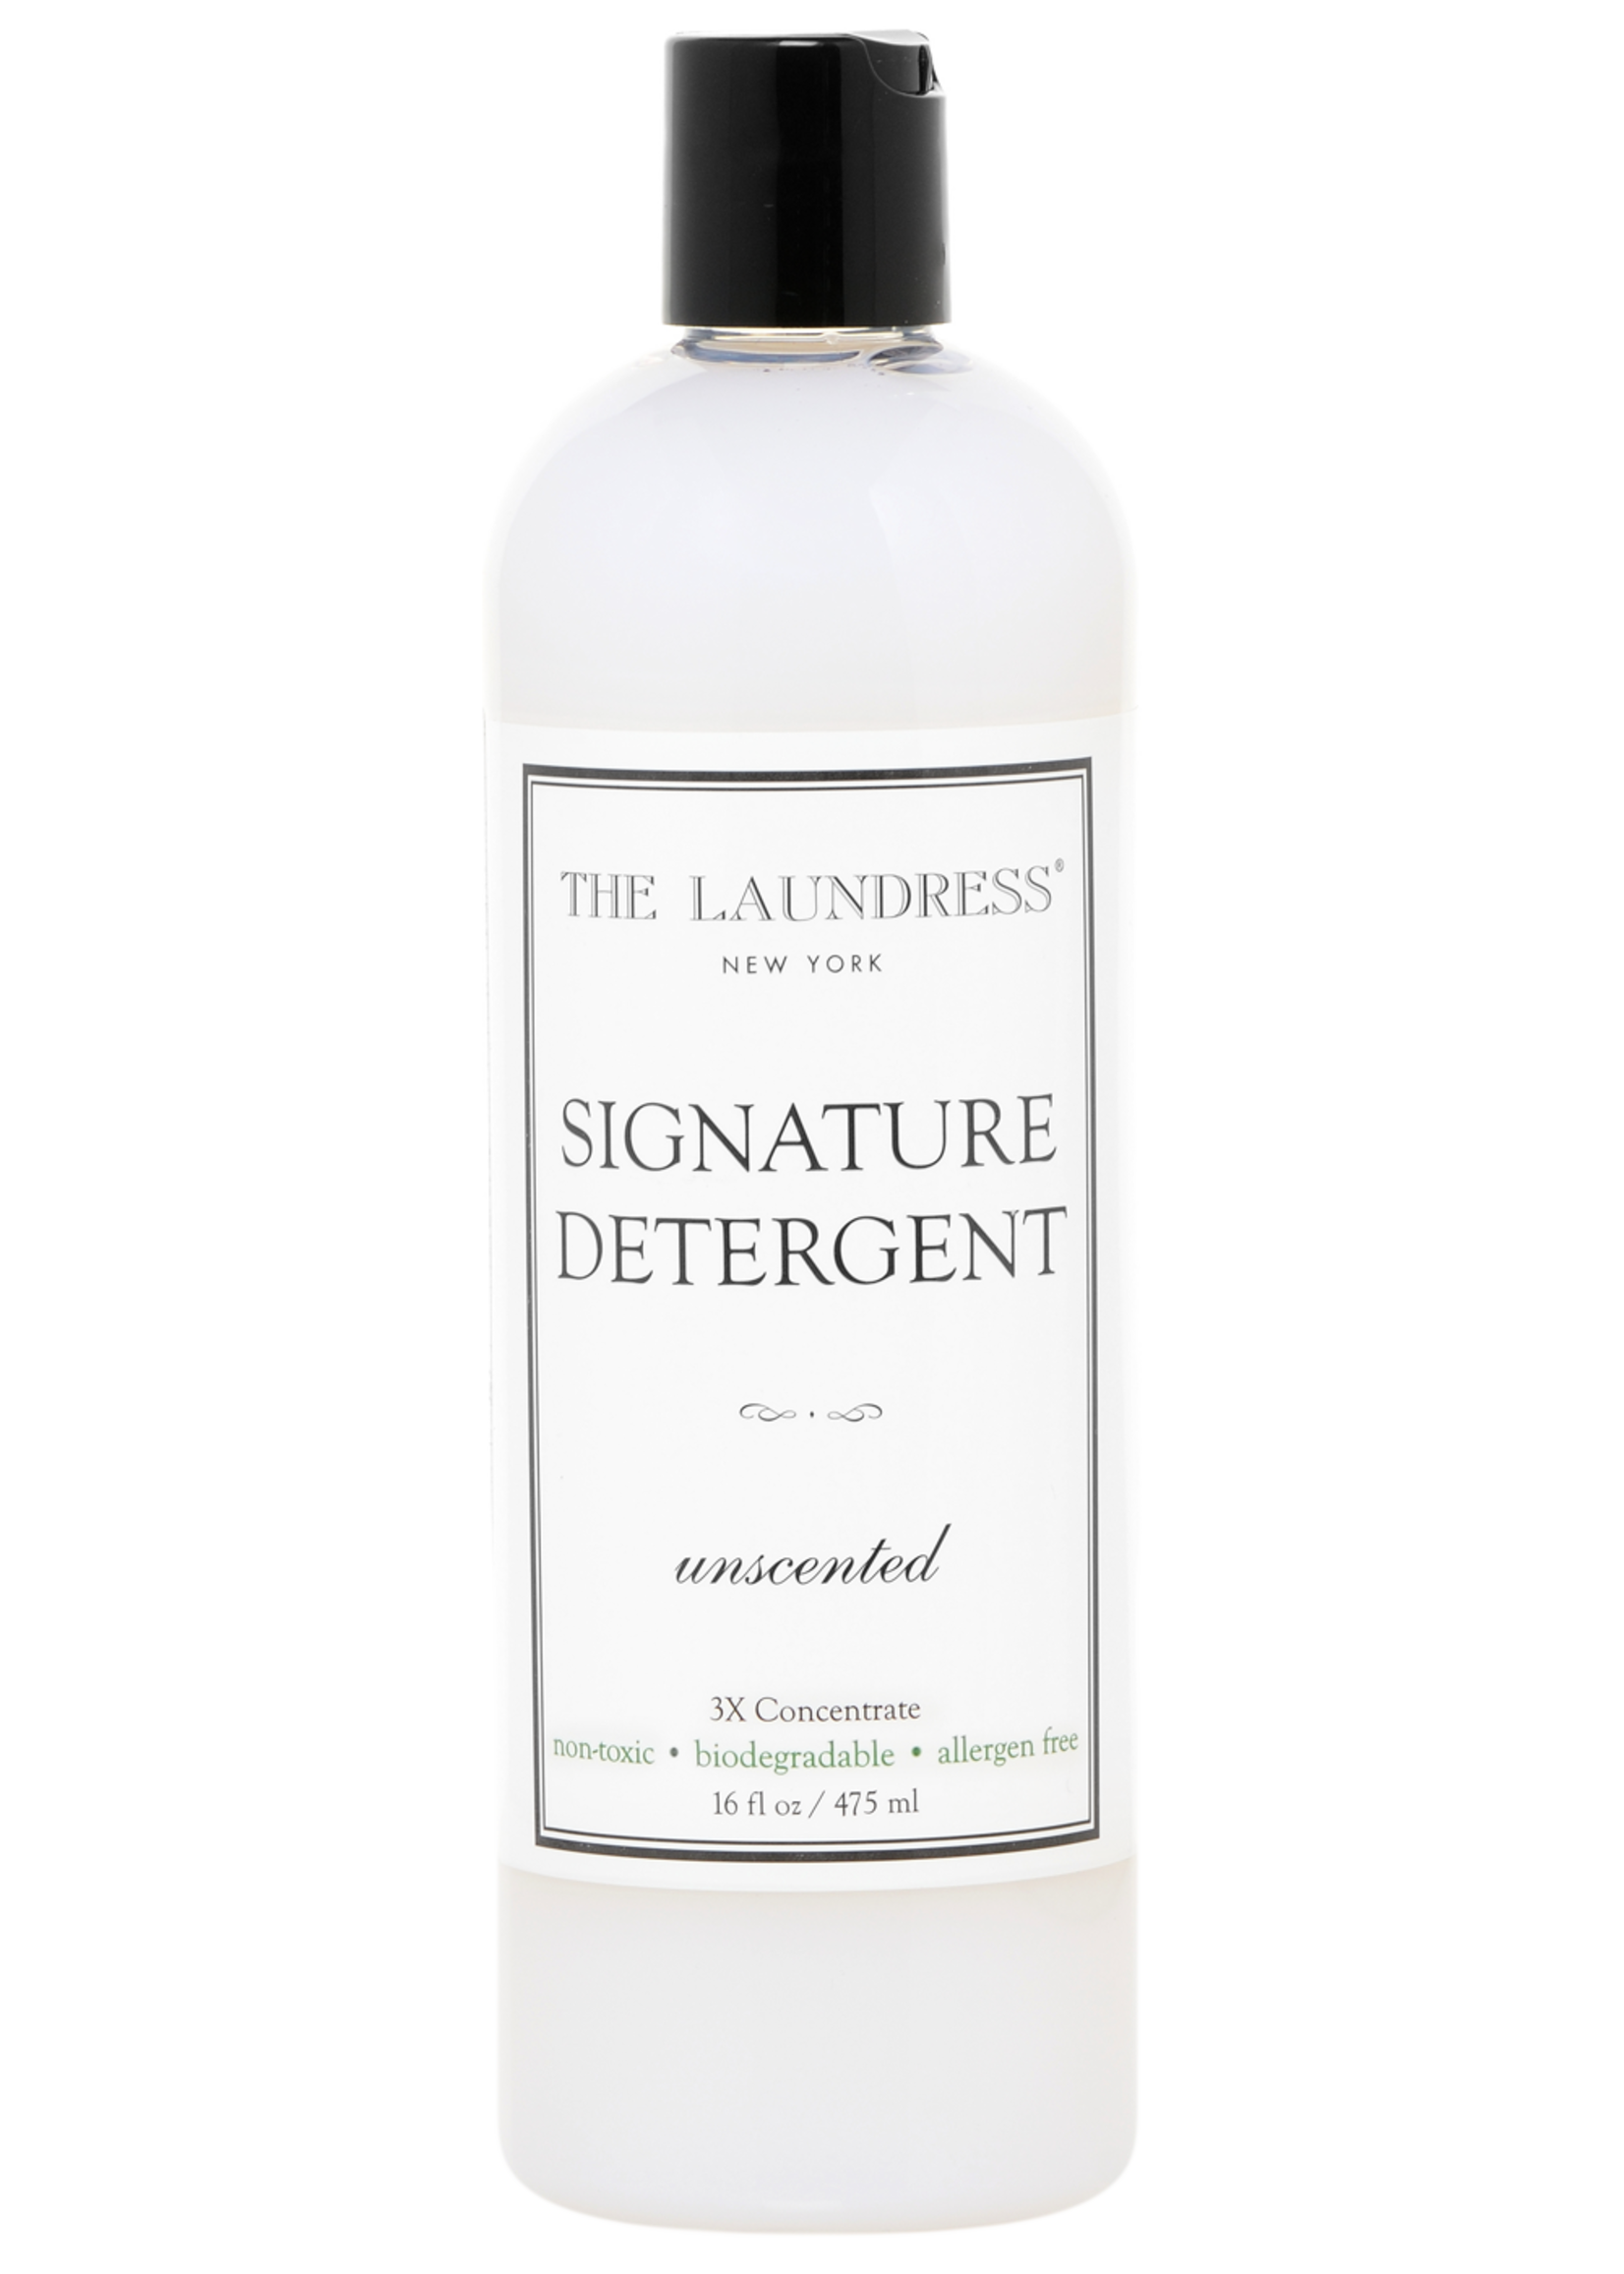 The Laundress New York Unscented Signature Detergent